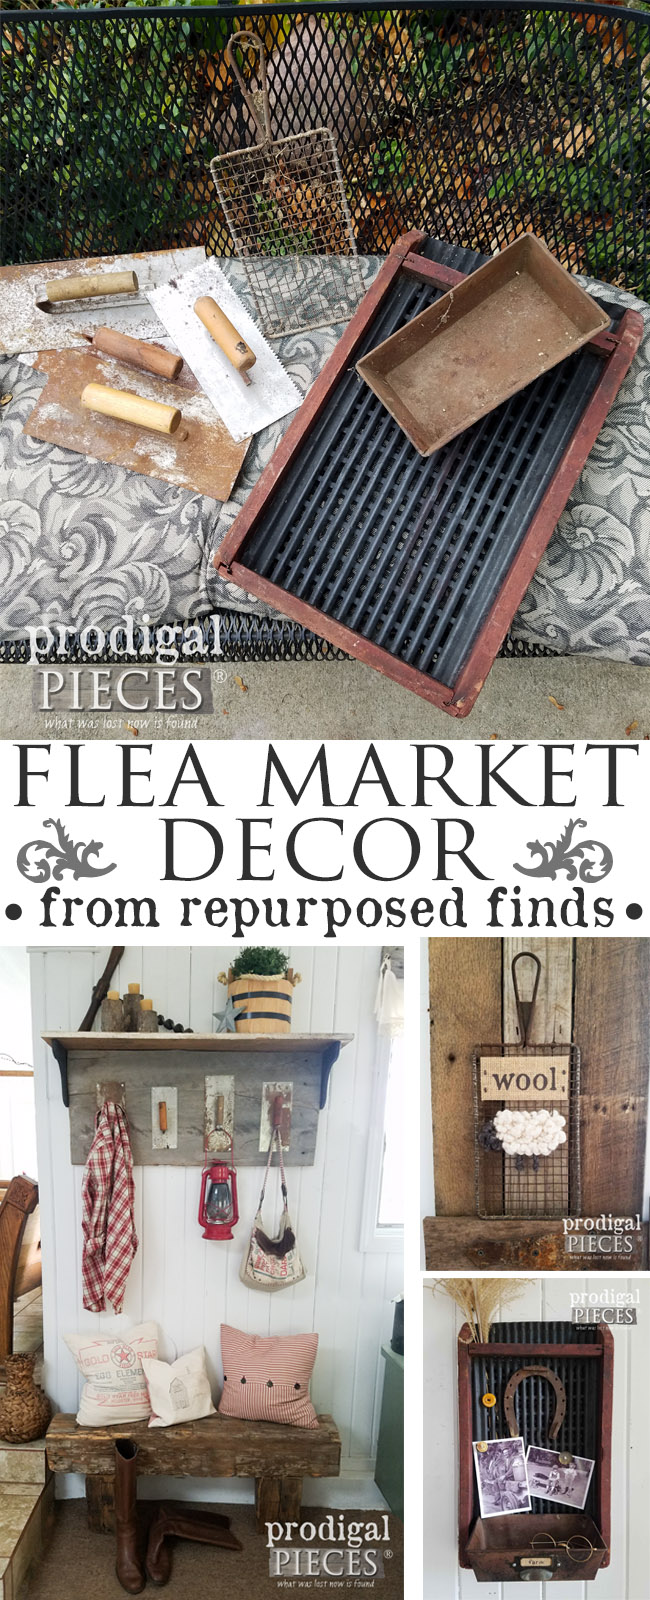 Do you love flea market decor? Check out how 3 different creations were made out of repurposed finds & all on a budget by Prodigal Pieces | prodigalpieces.com